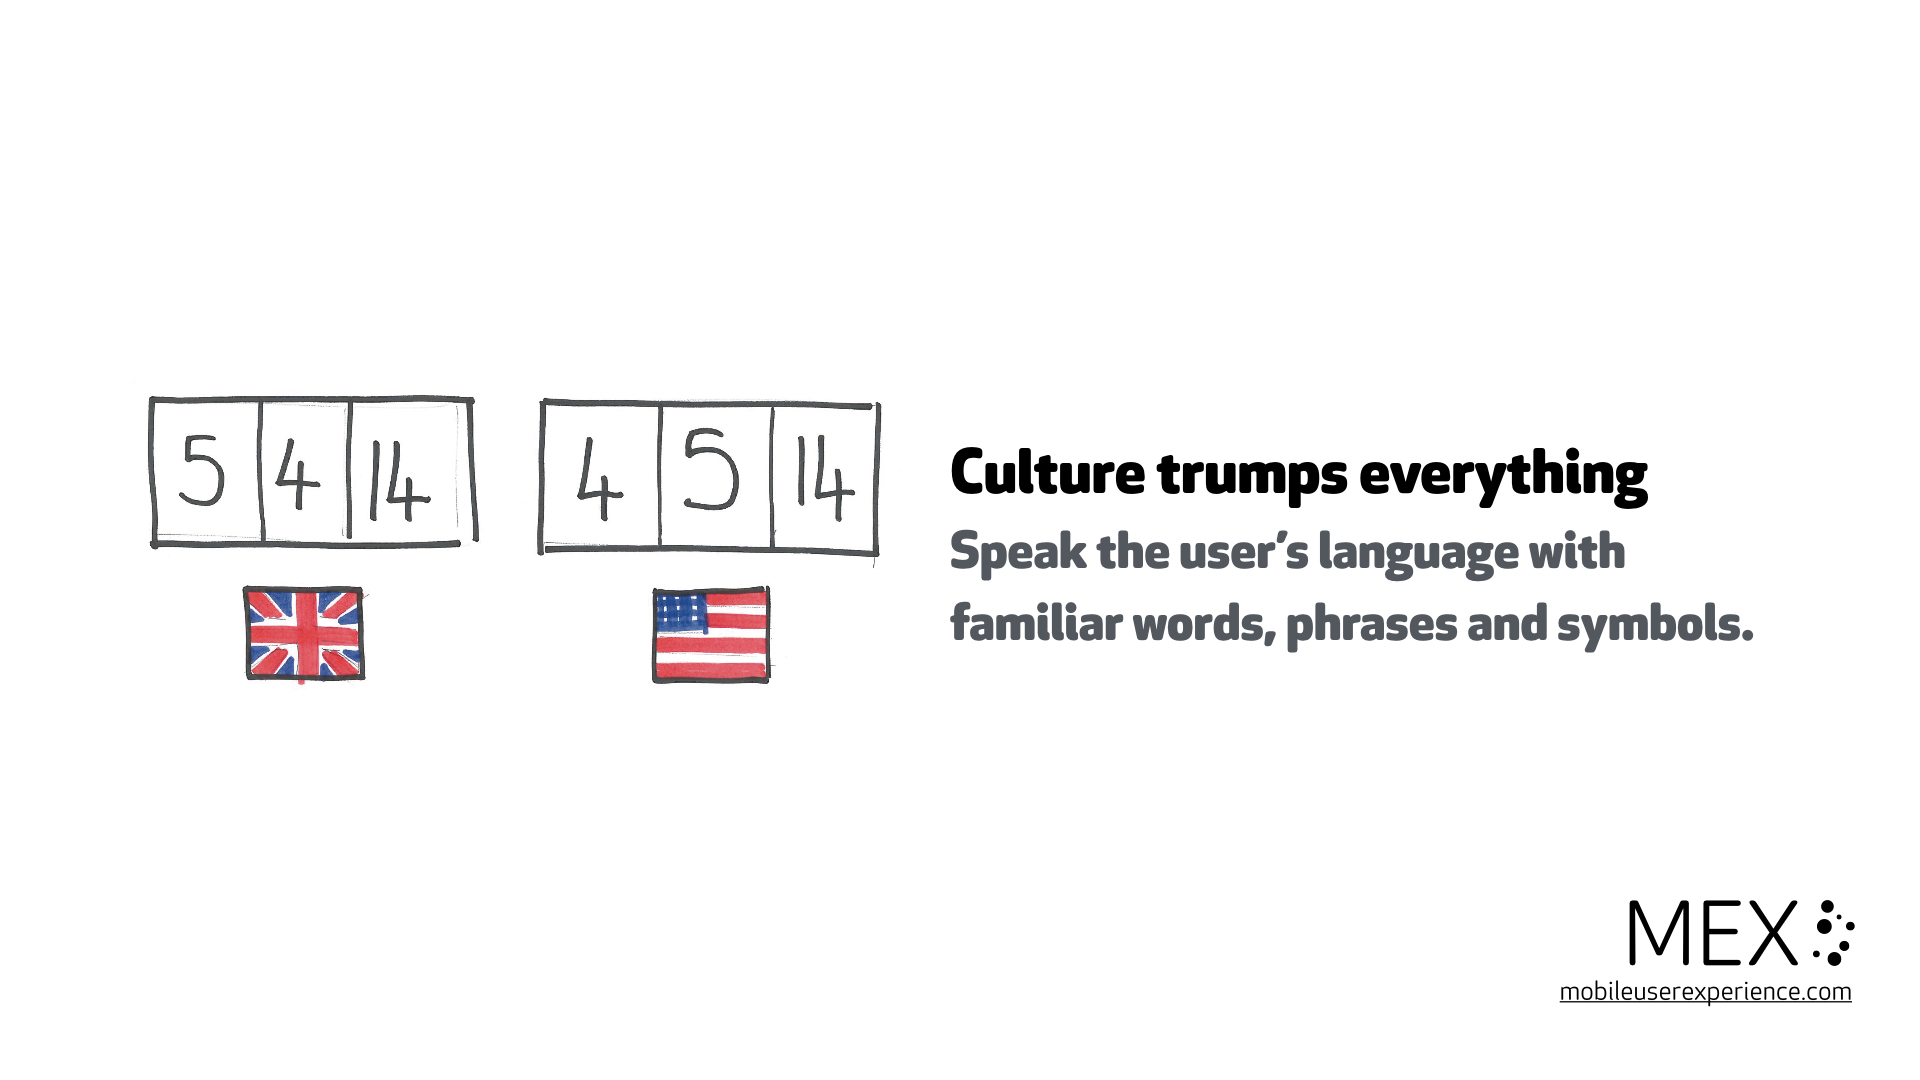 Culture trumps everything Speak the user's language with familiar words, phrases and symbols.